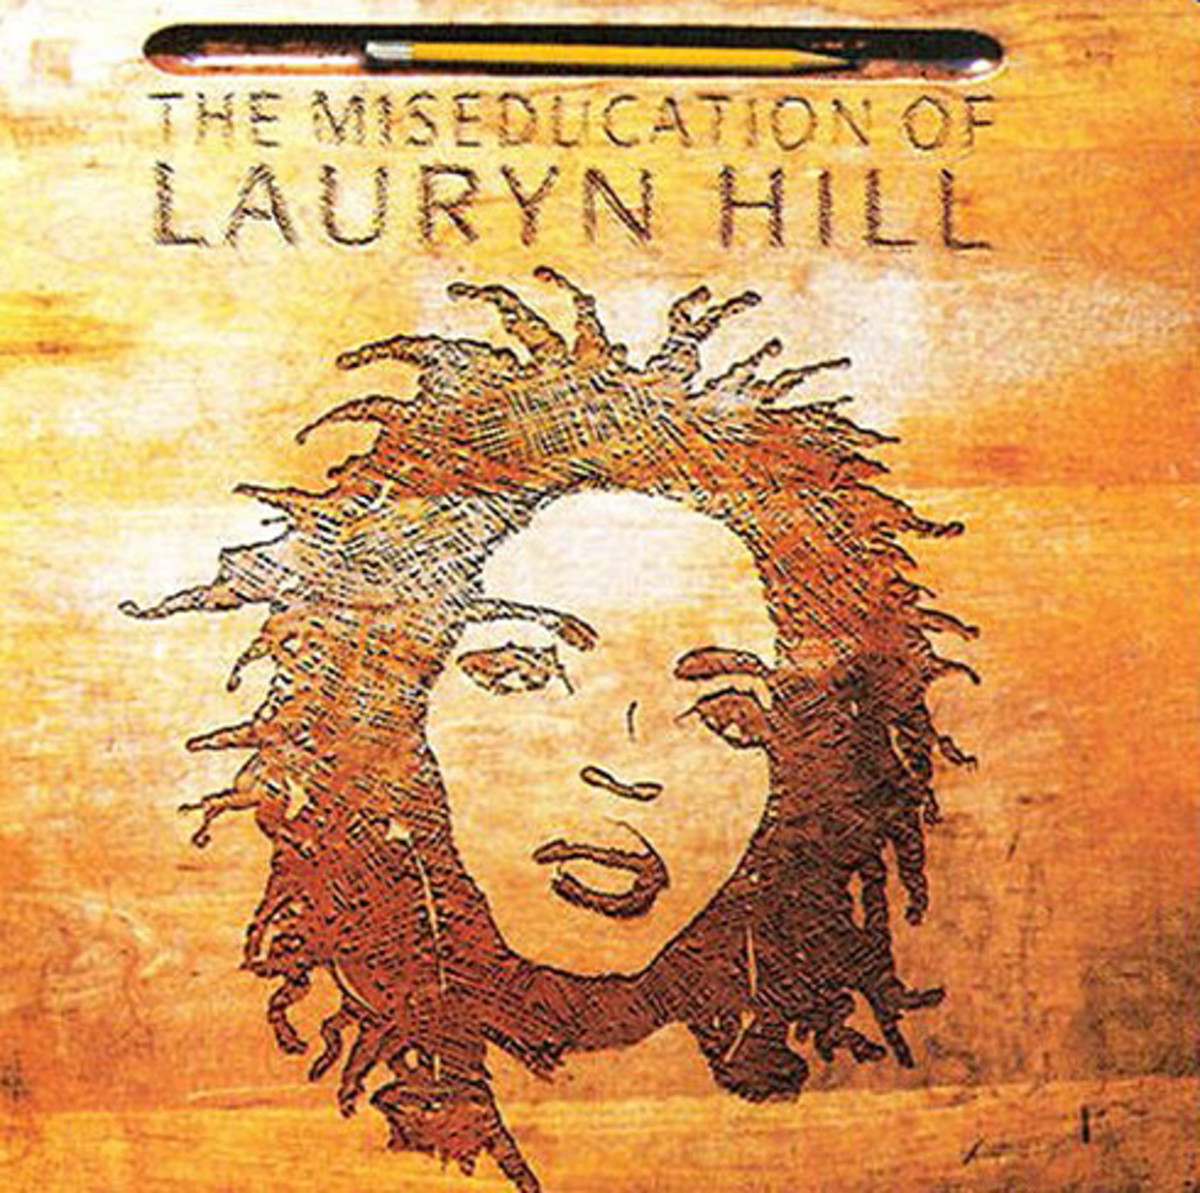 laureyn-hill